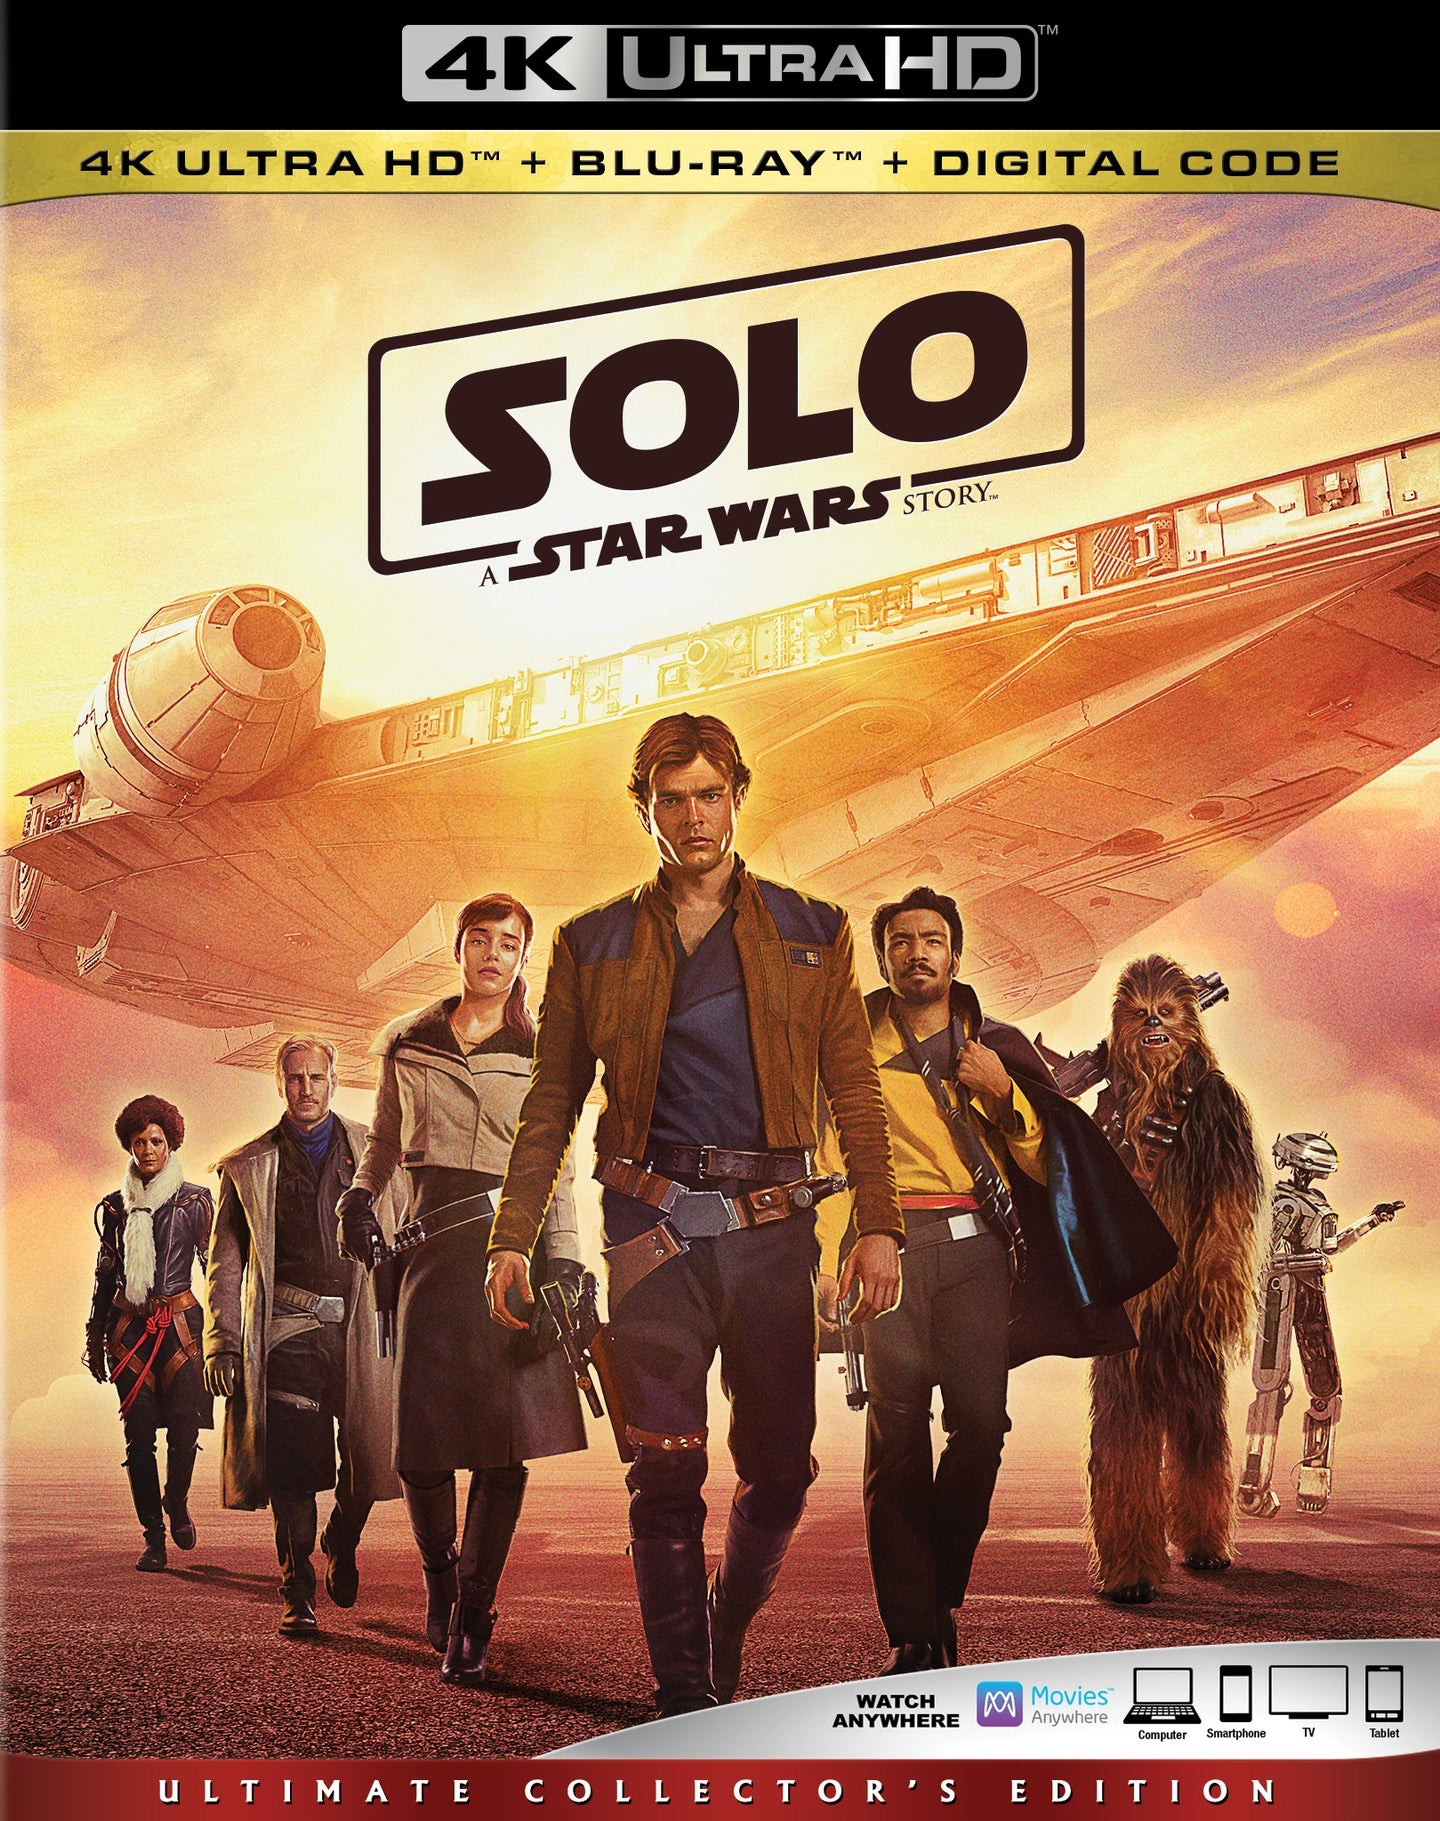 Solo: A Star Wars Story (2018) Vudu or Movies Anywhere 4K redemption only